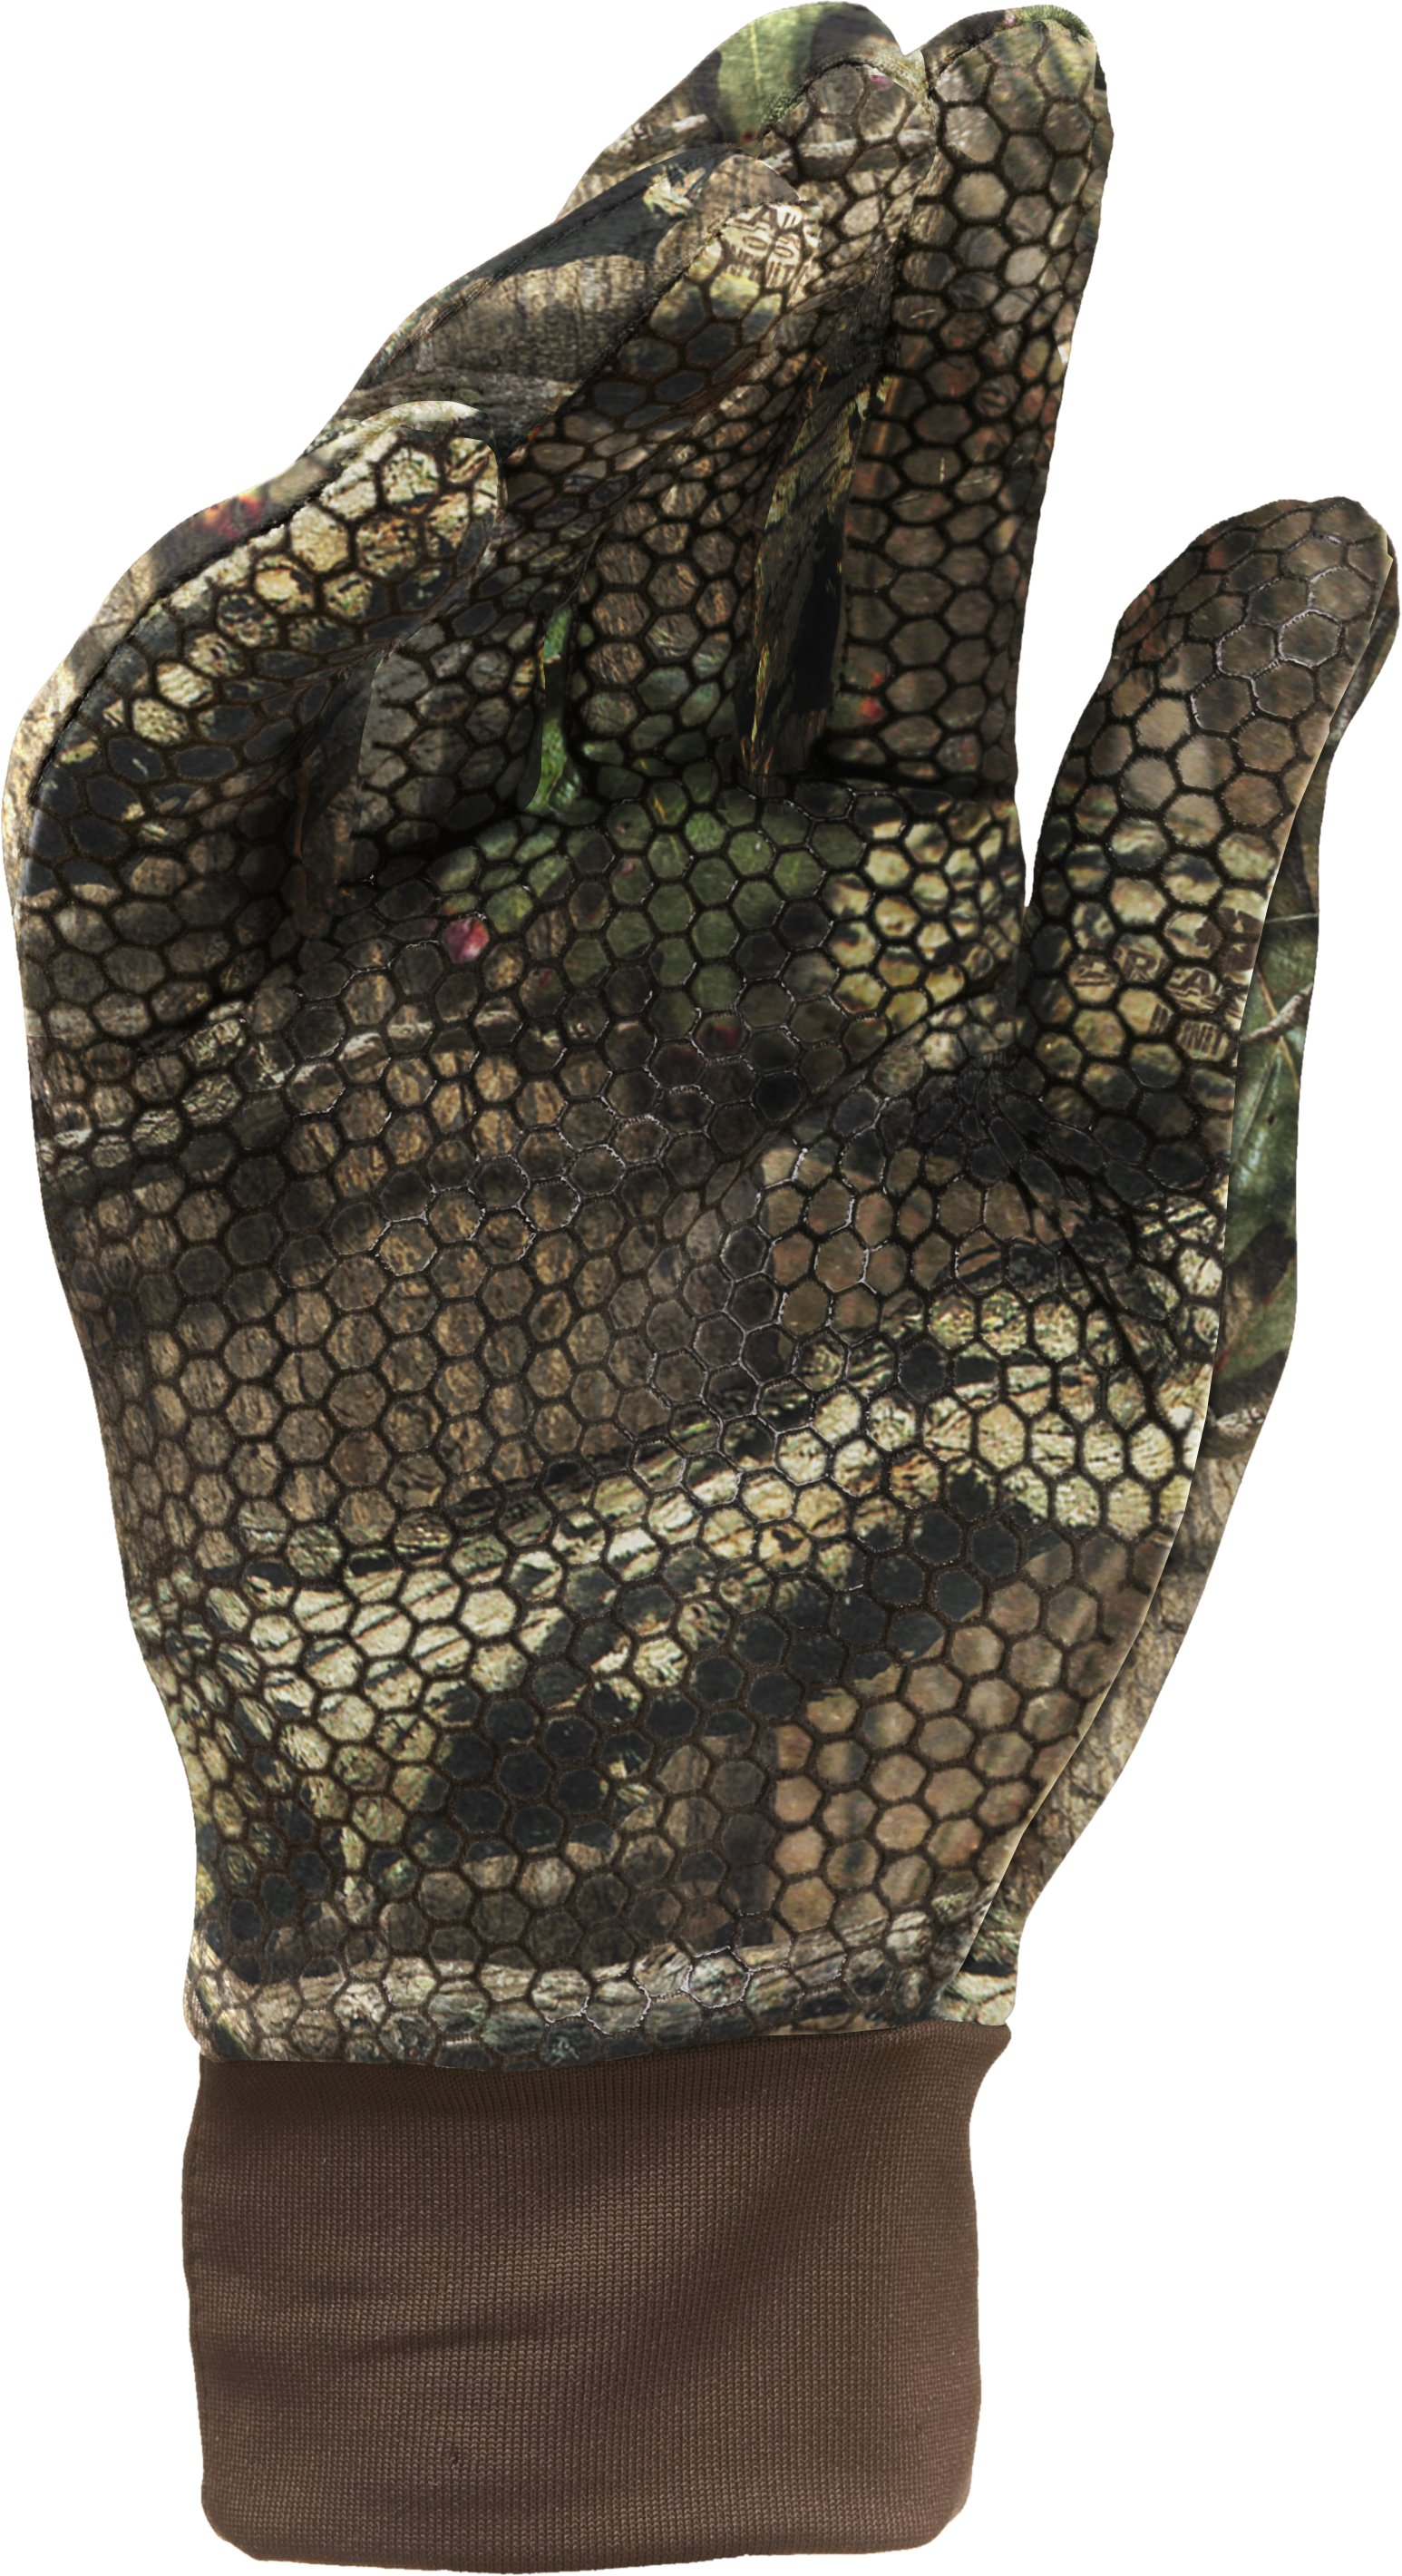 Men's Hurlock Camo Hunting Gloves, Mossy Oak Break-Up Infinity, zoomed image